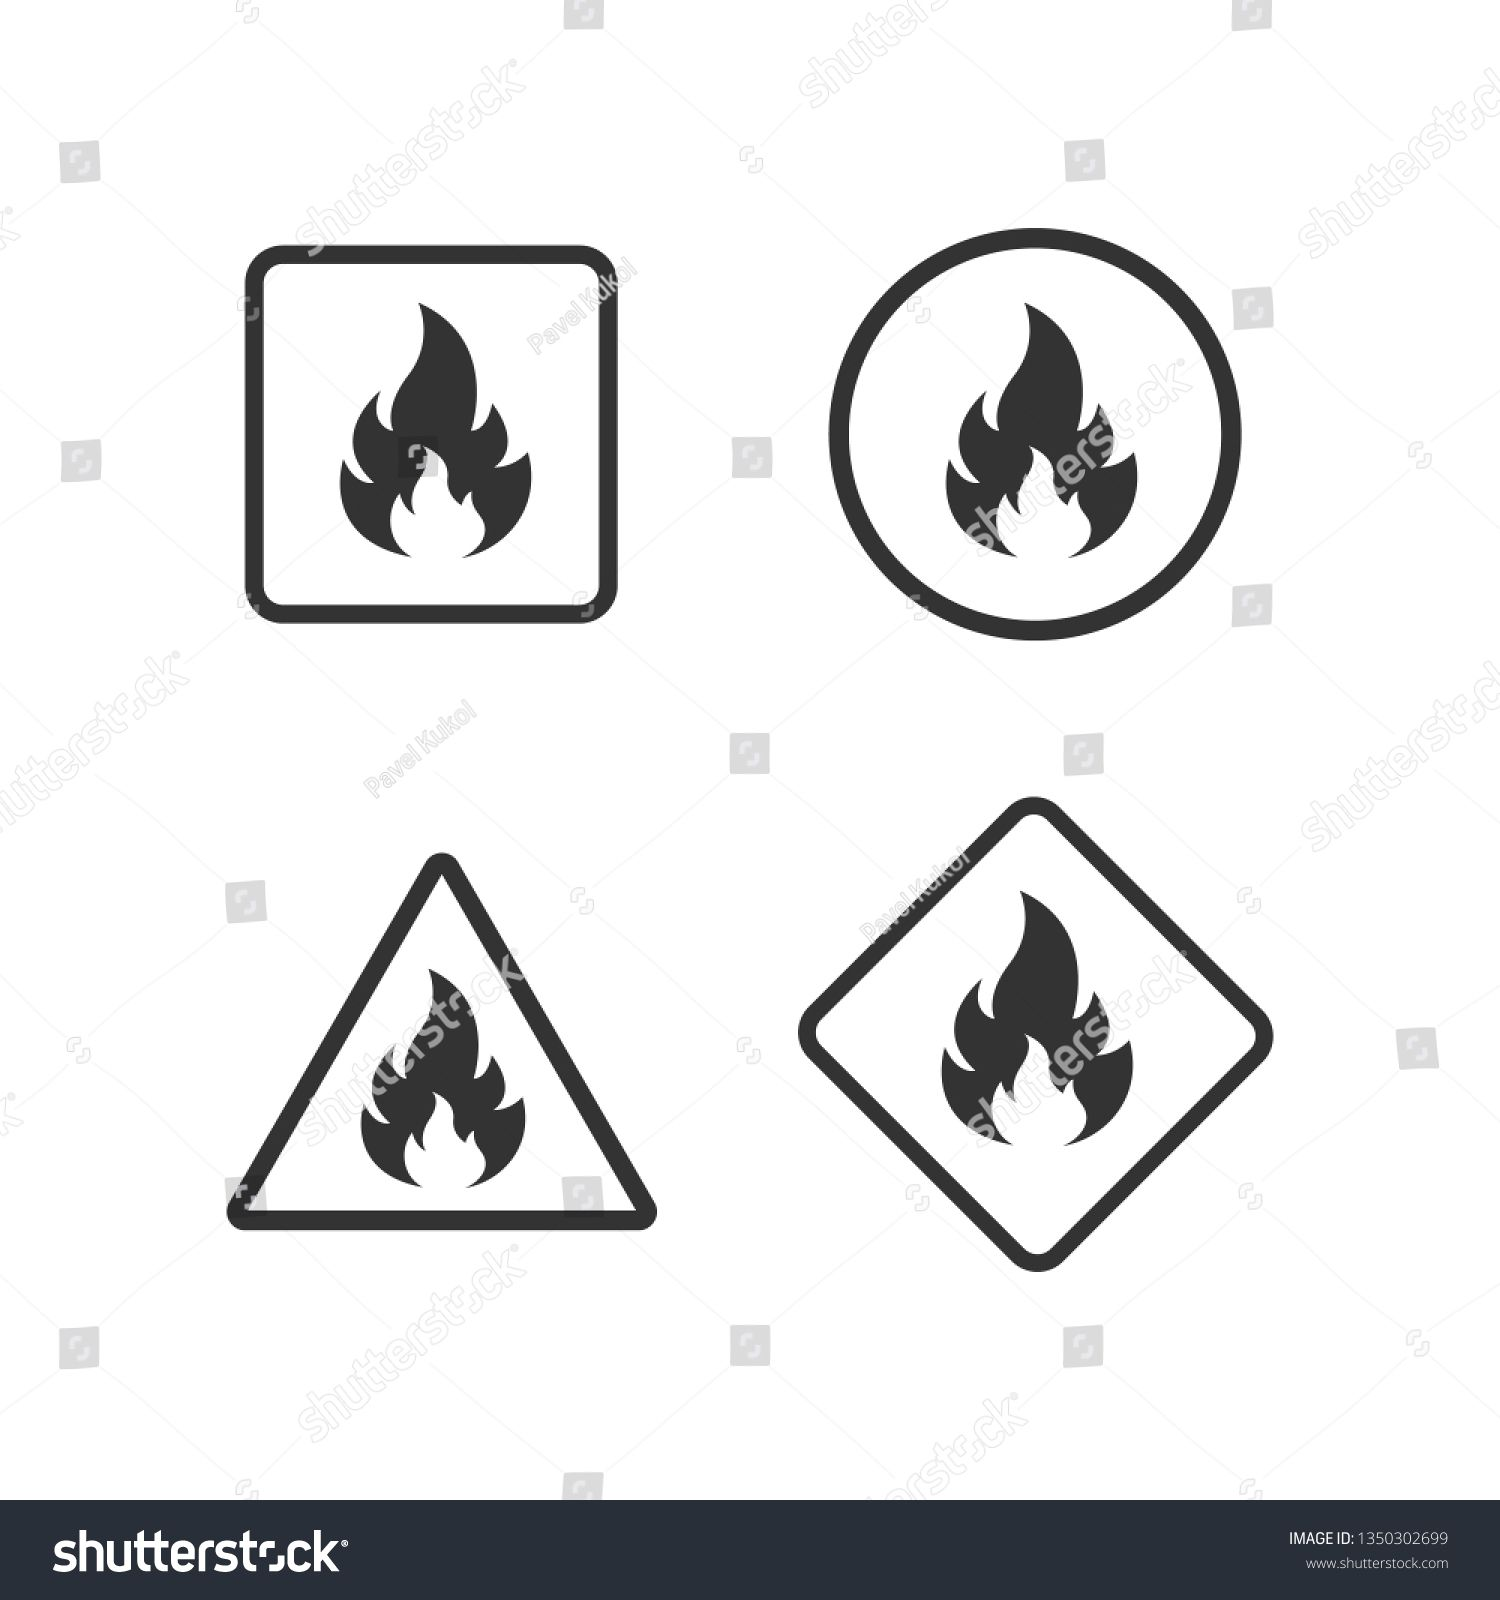 Fire Warning Dangerous flame attention icon. Flammable